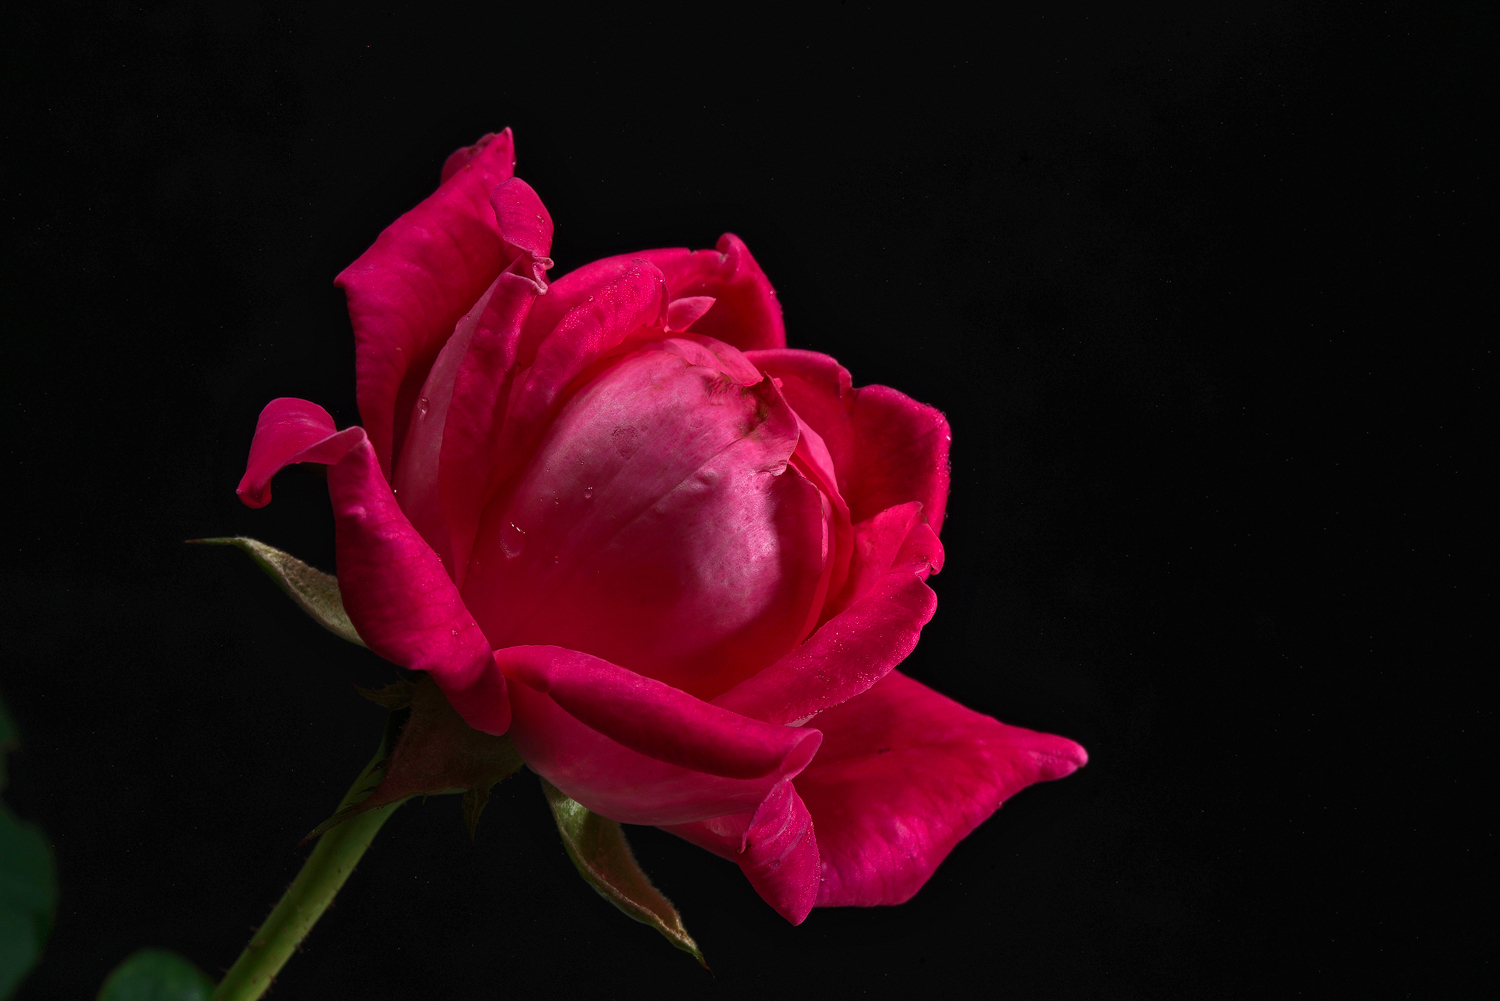 just a rose author sava gregory and verena thank